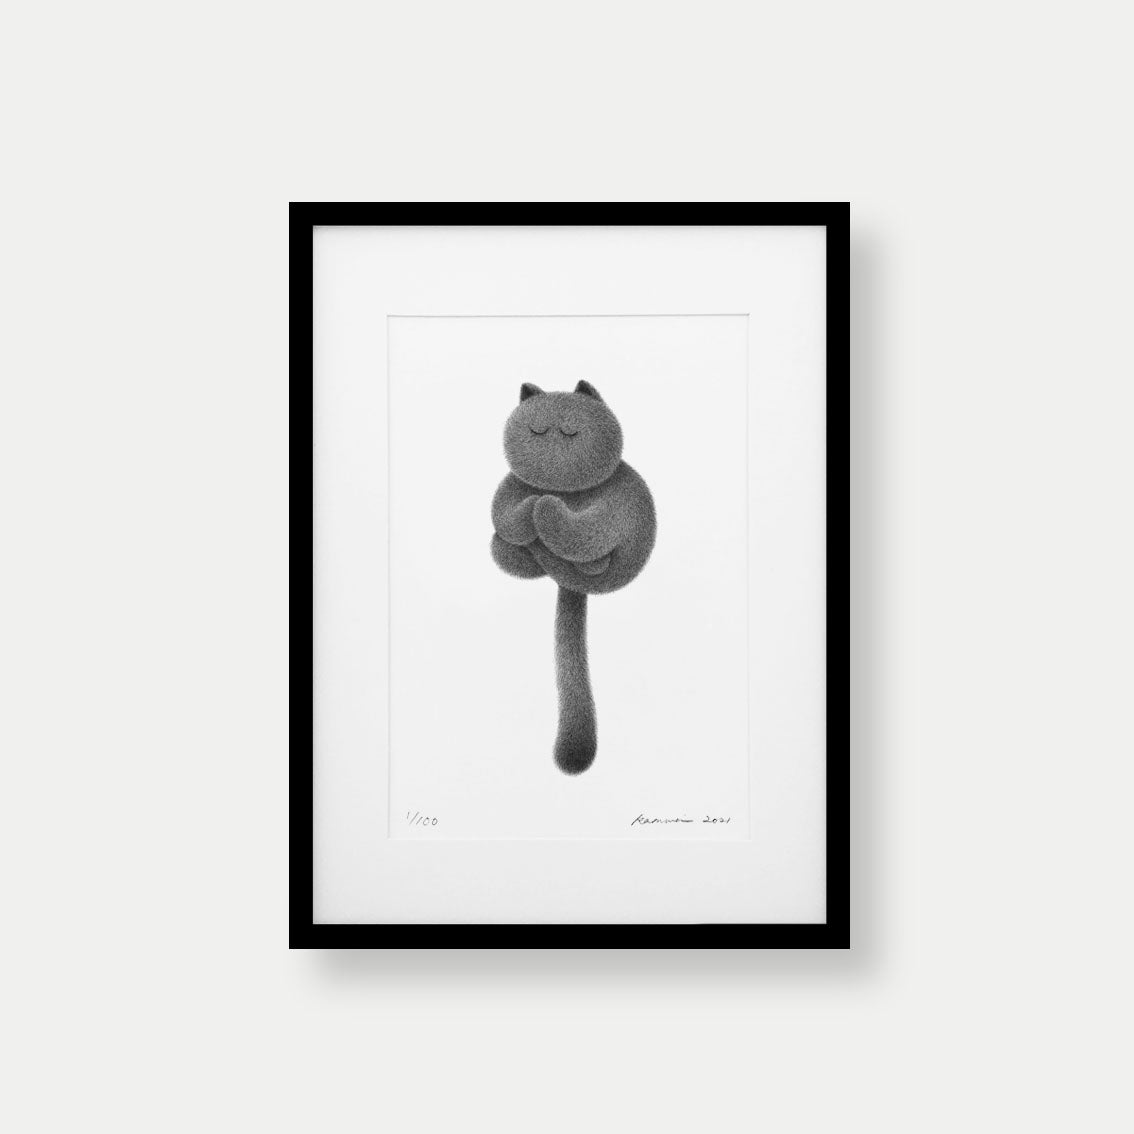 Image of Kitty No.67 – A4 Limited Edition Print